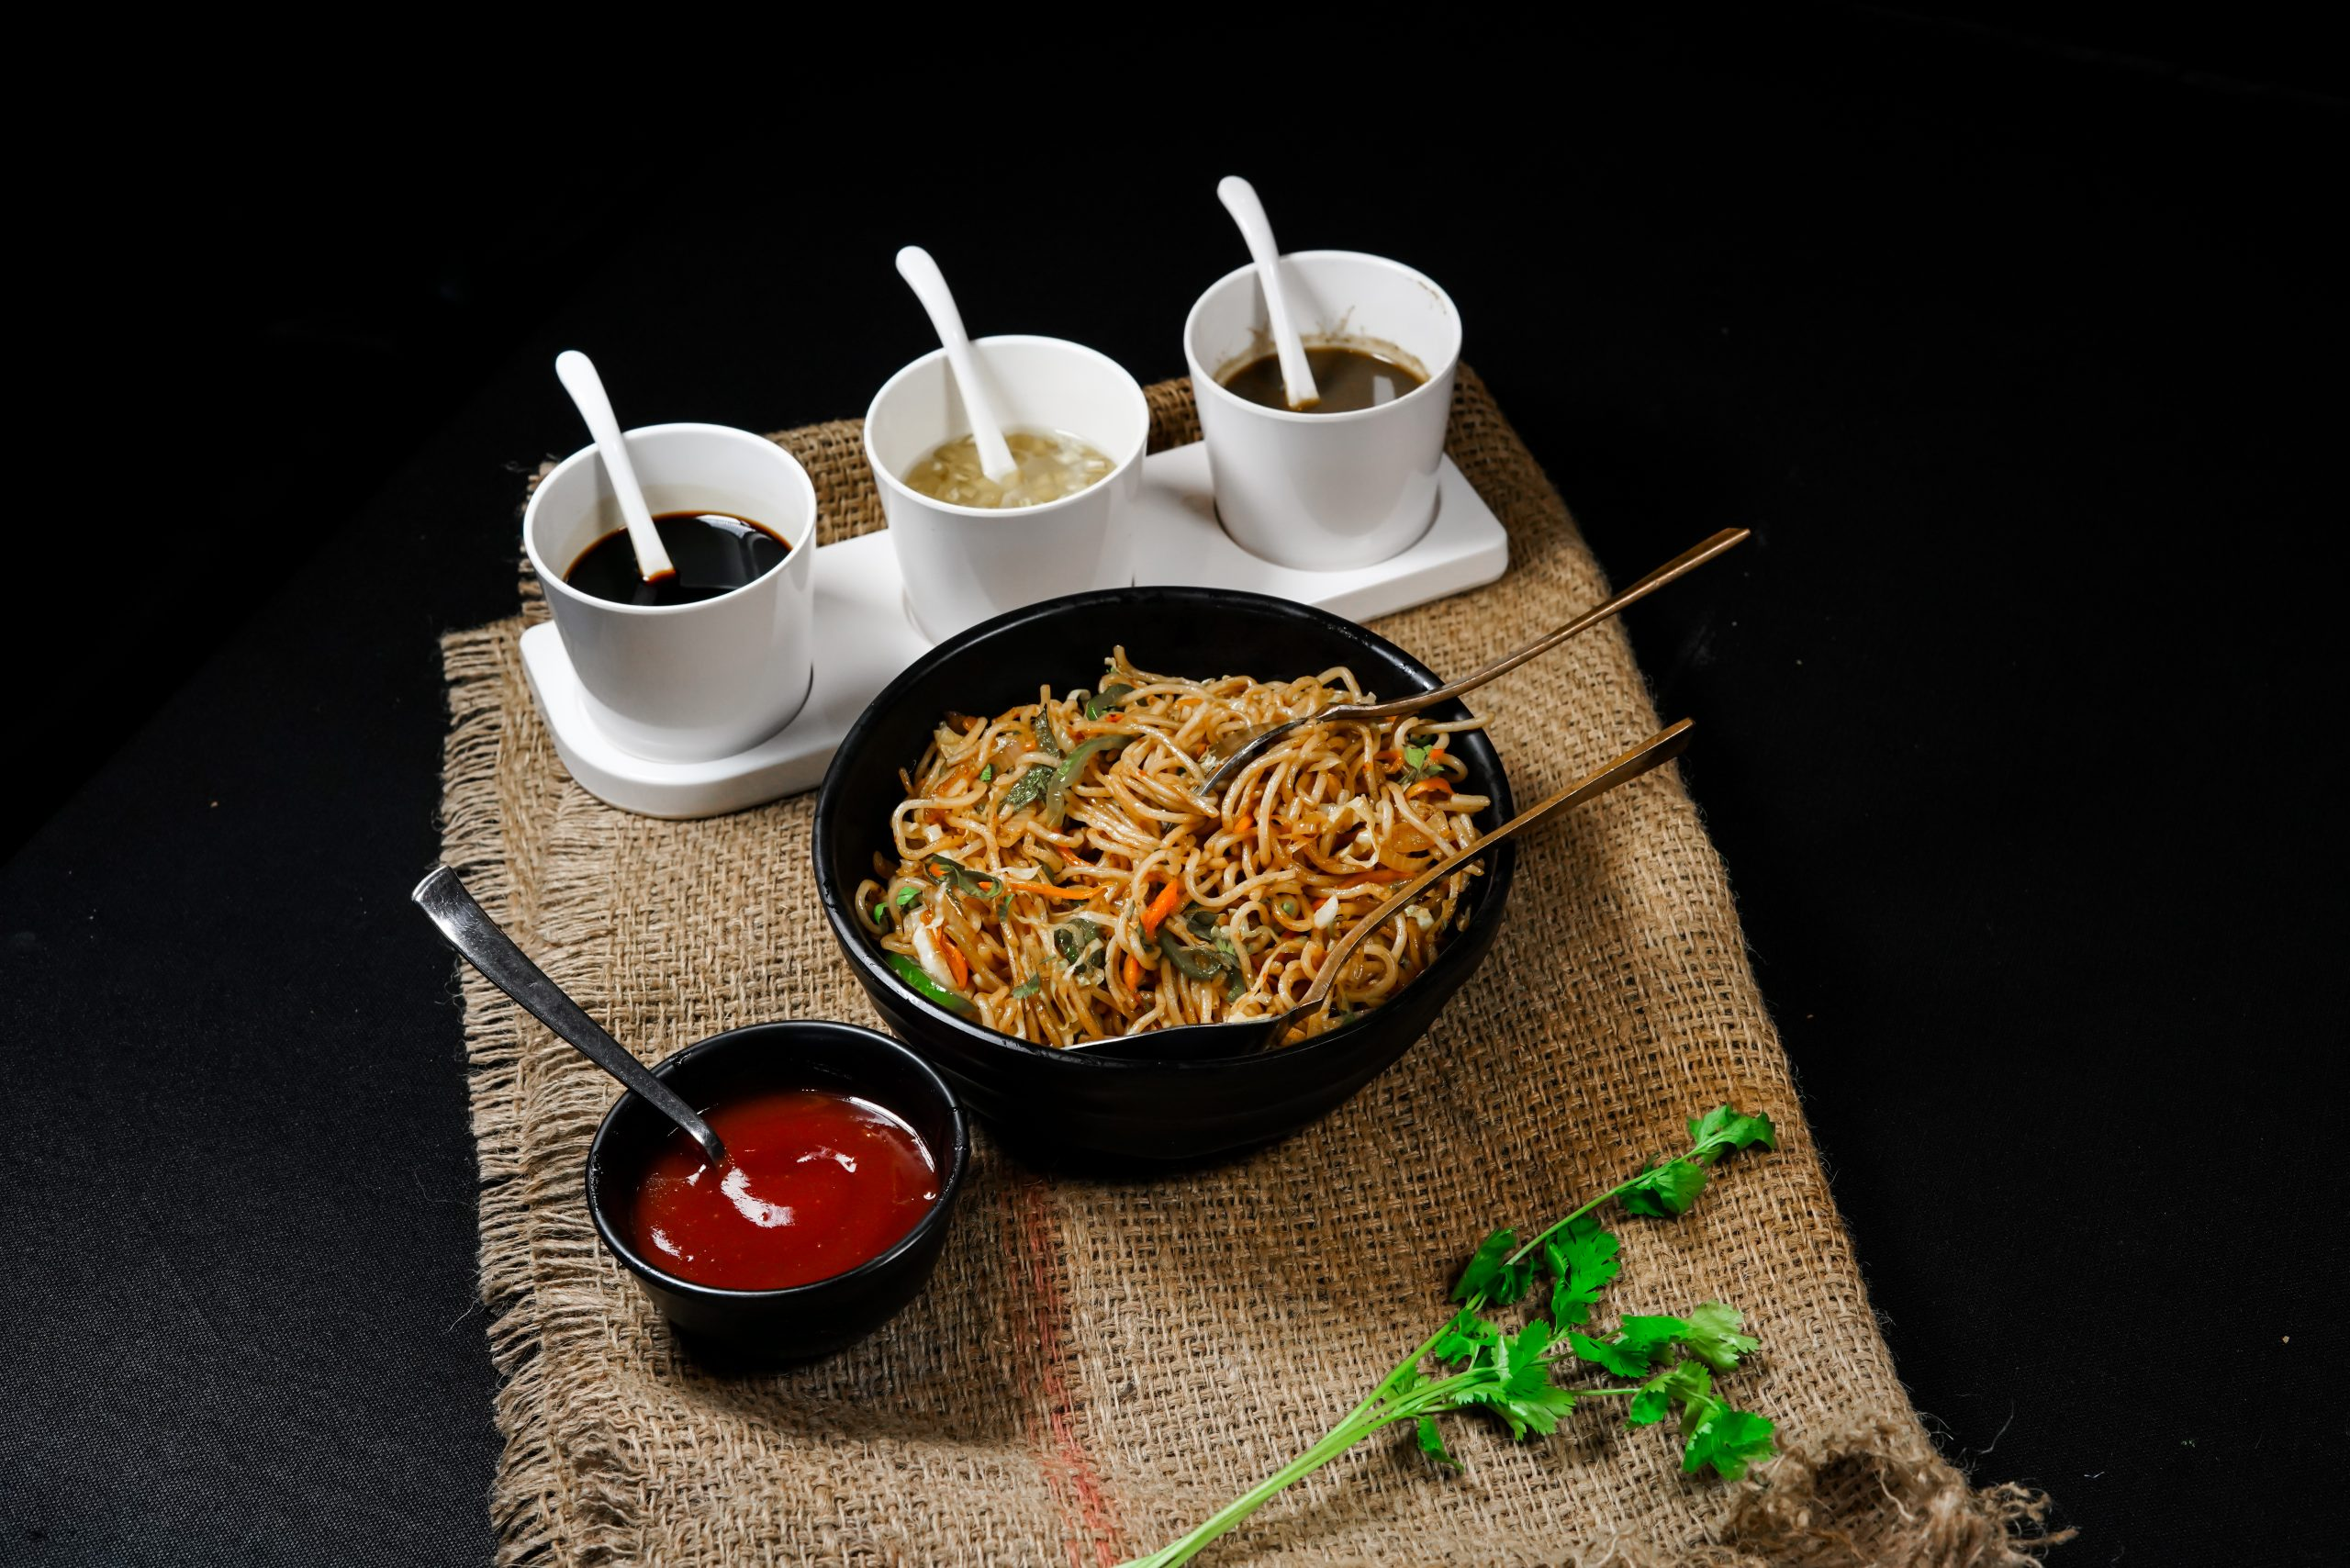 Noodles with soup cups